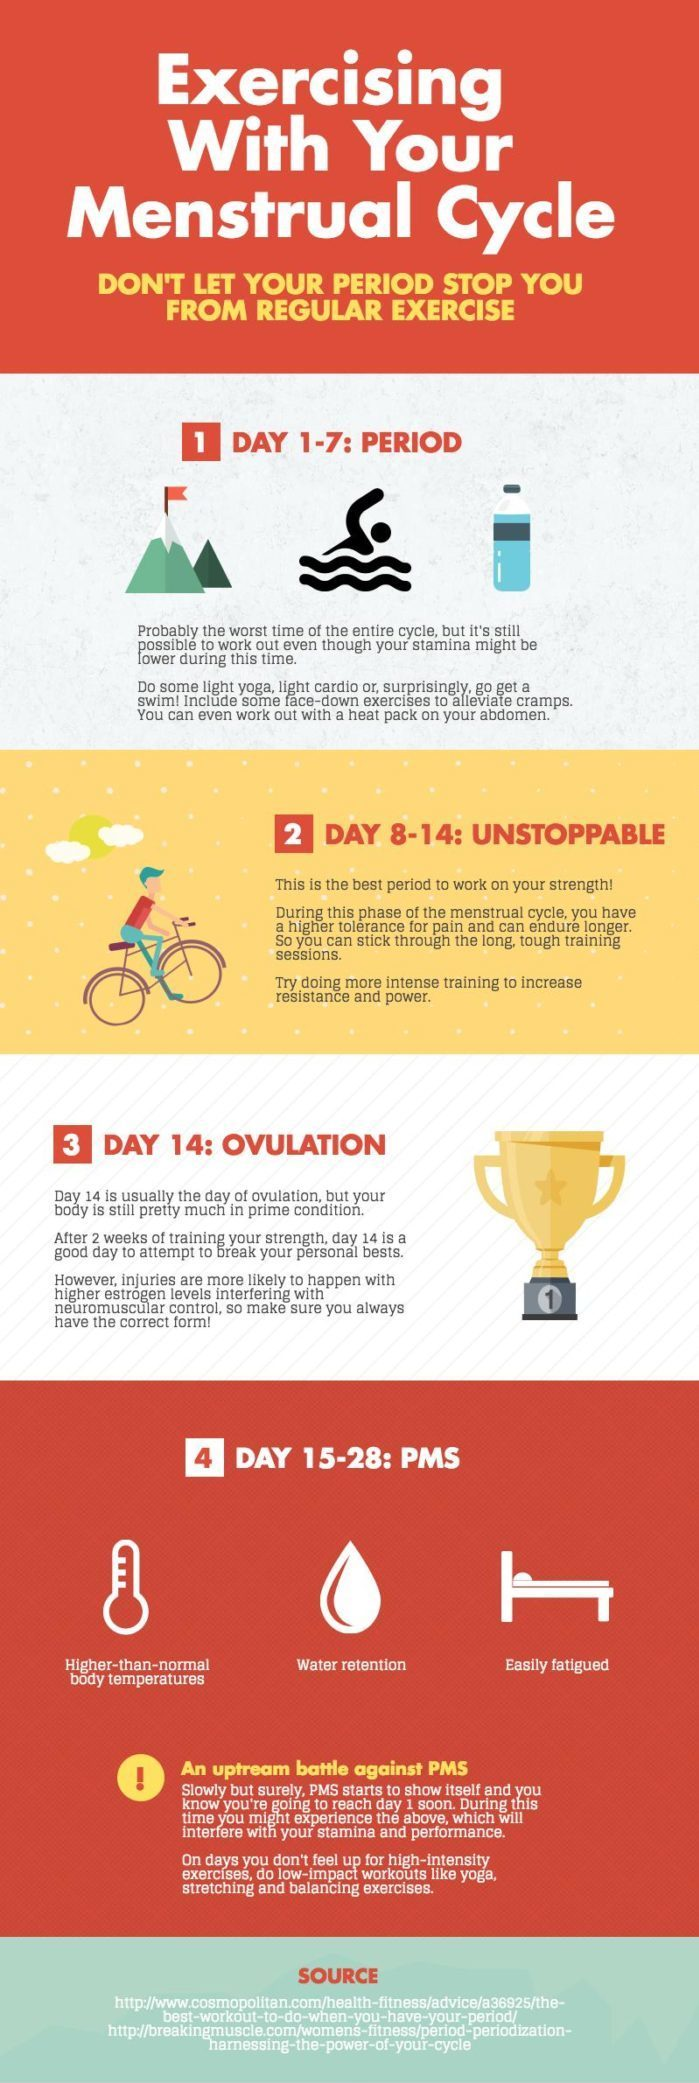 exercising with your menstrual cycle infographic